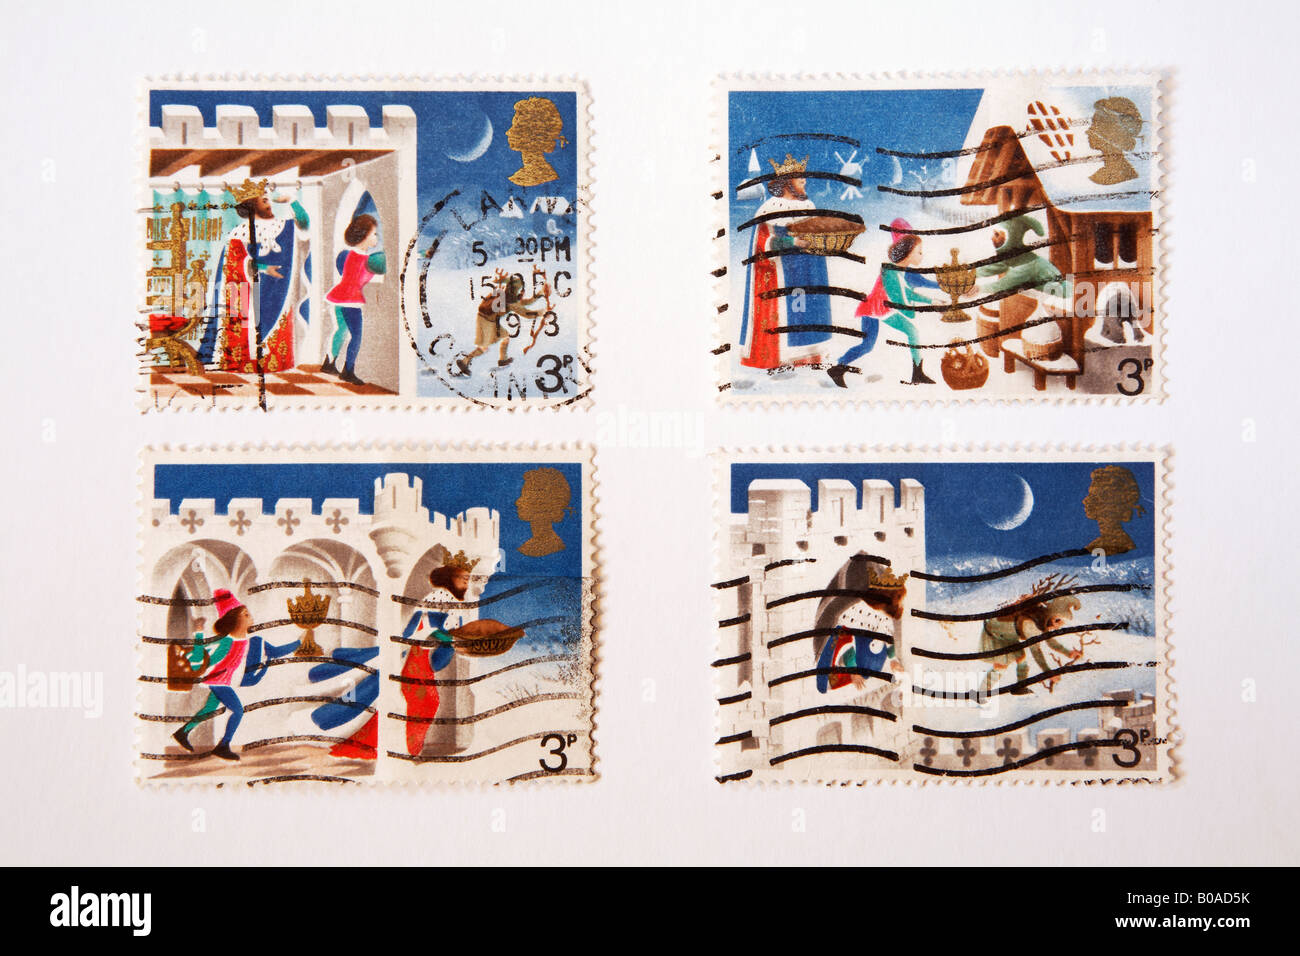 four British Christmas postage stamps from the 1970s depicting Good King Wenceslas - Stock Image